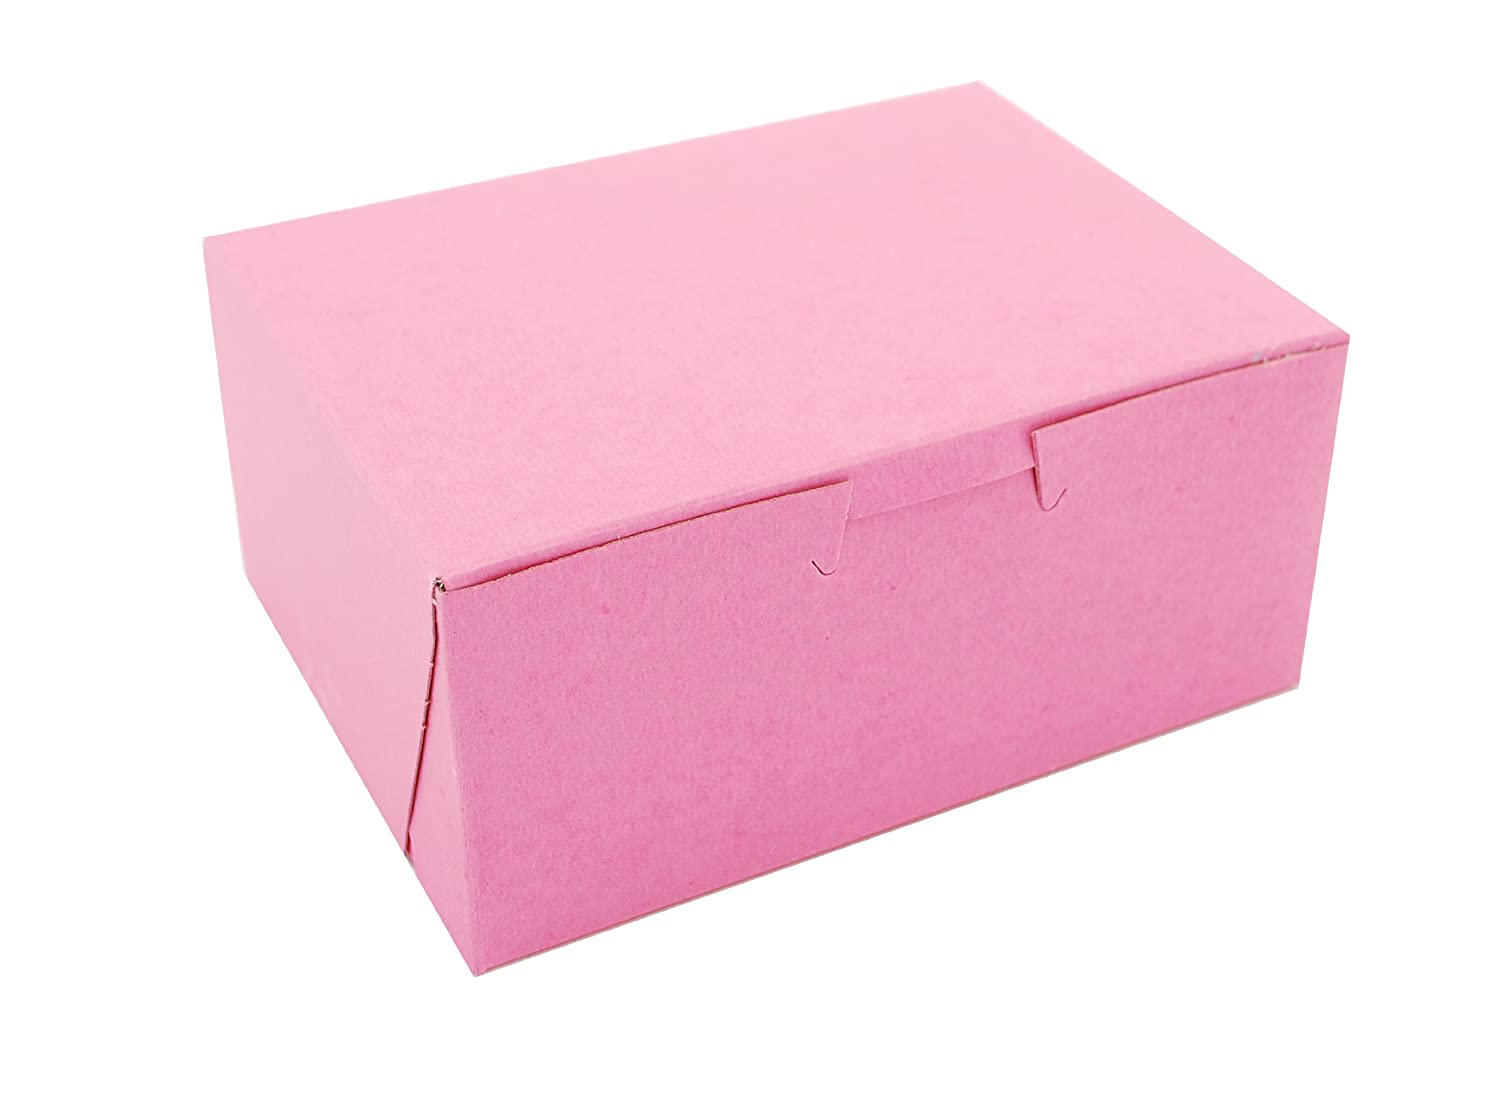 Southern Champion Tray 0803 Pink Paperboard Non-Window Lock-Corner Bakery Box, 6